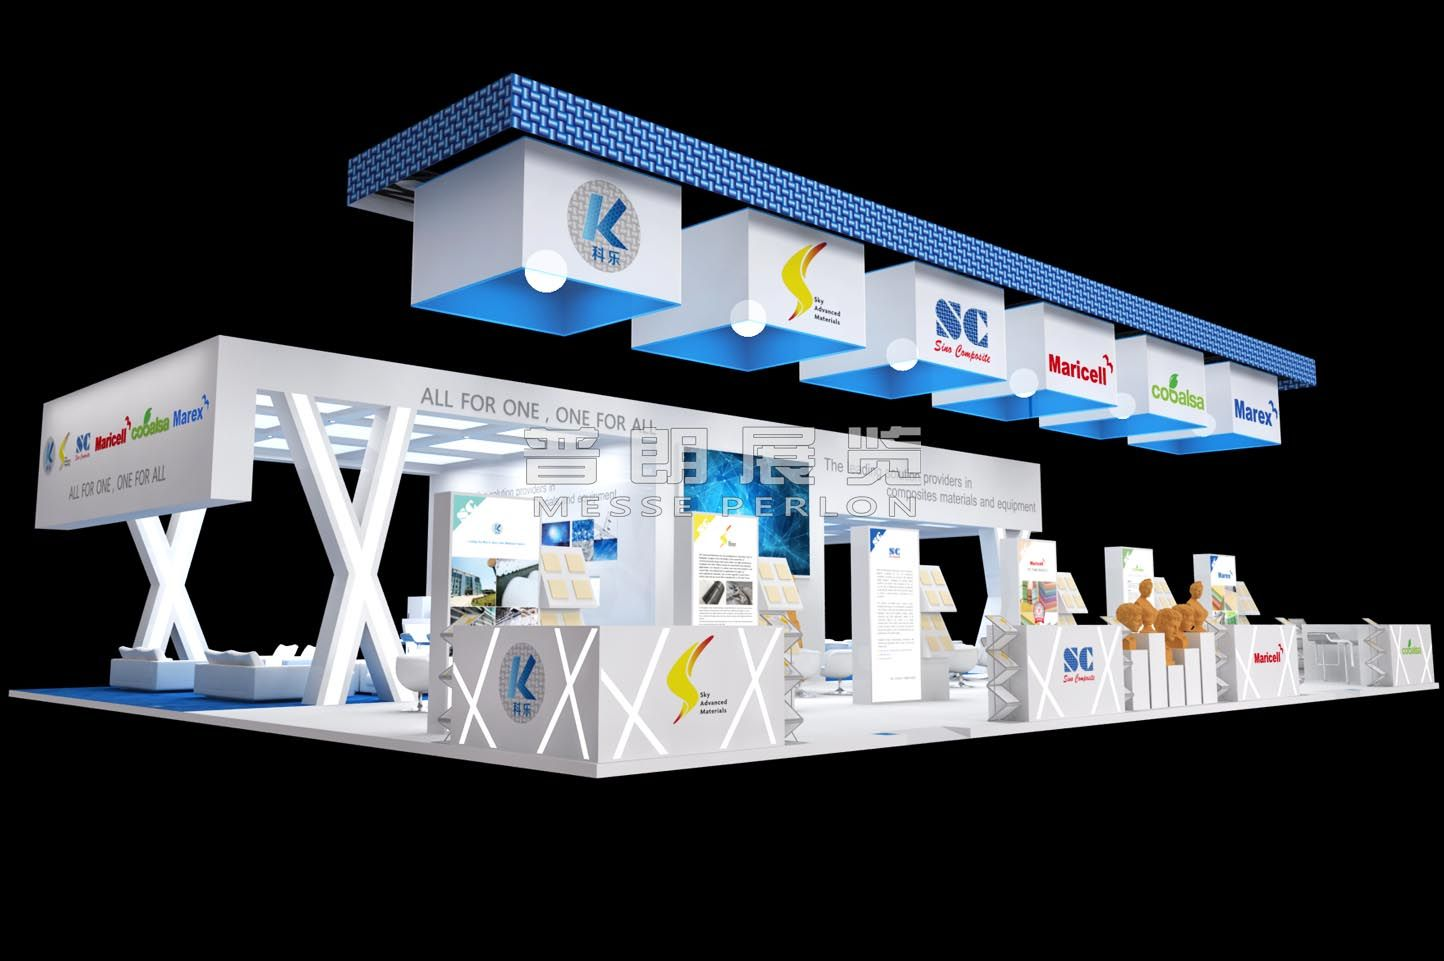 Exhibition Booth Contractor : Sc germany exhibition booth design company america exhibition design